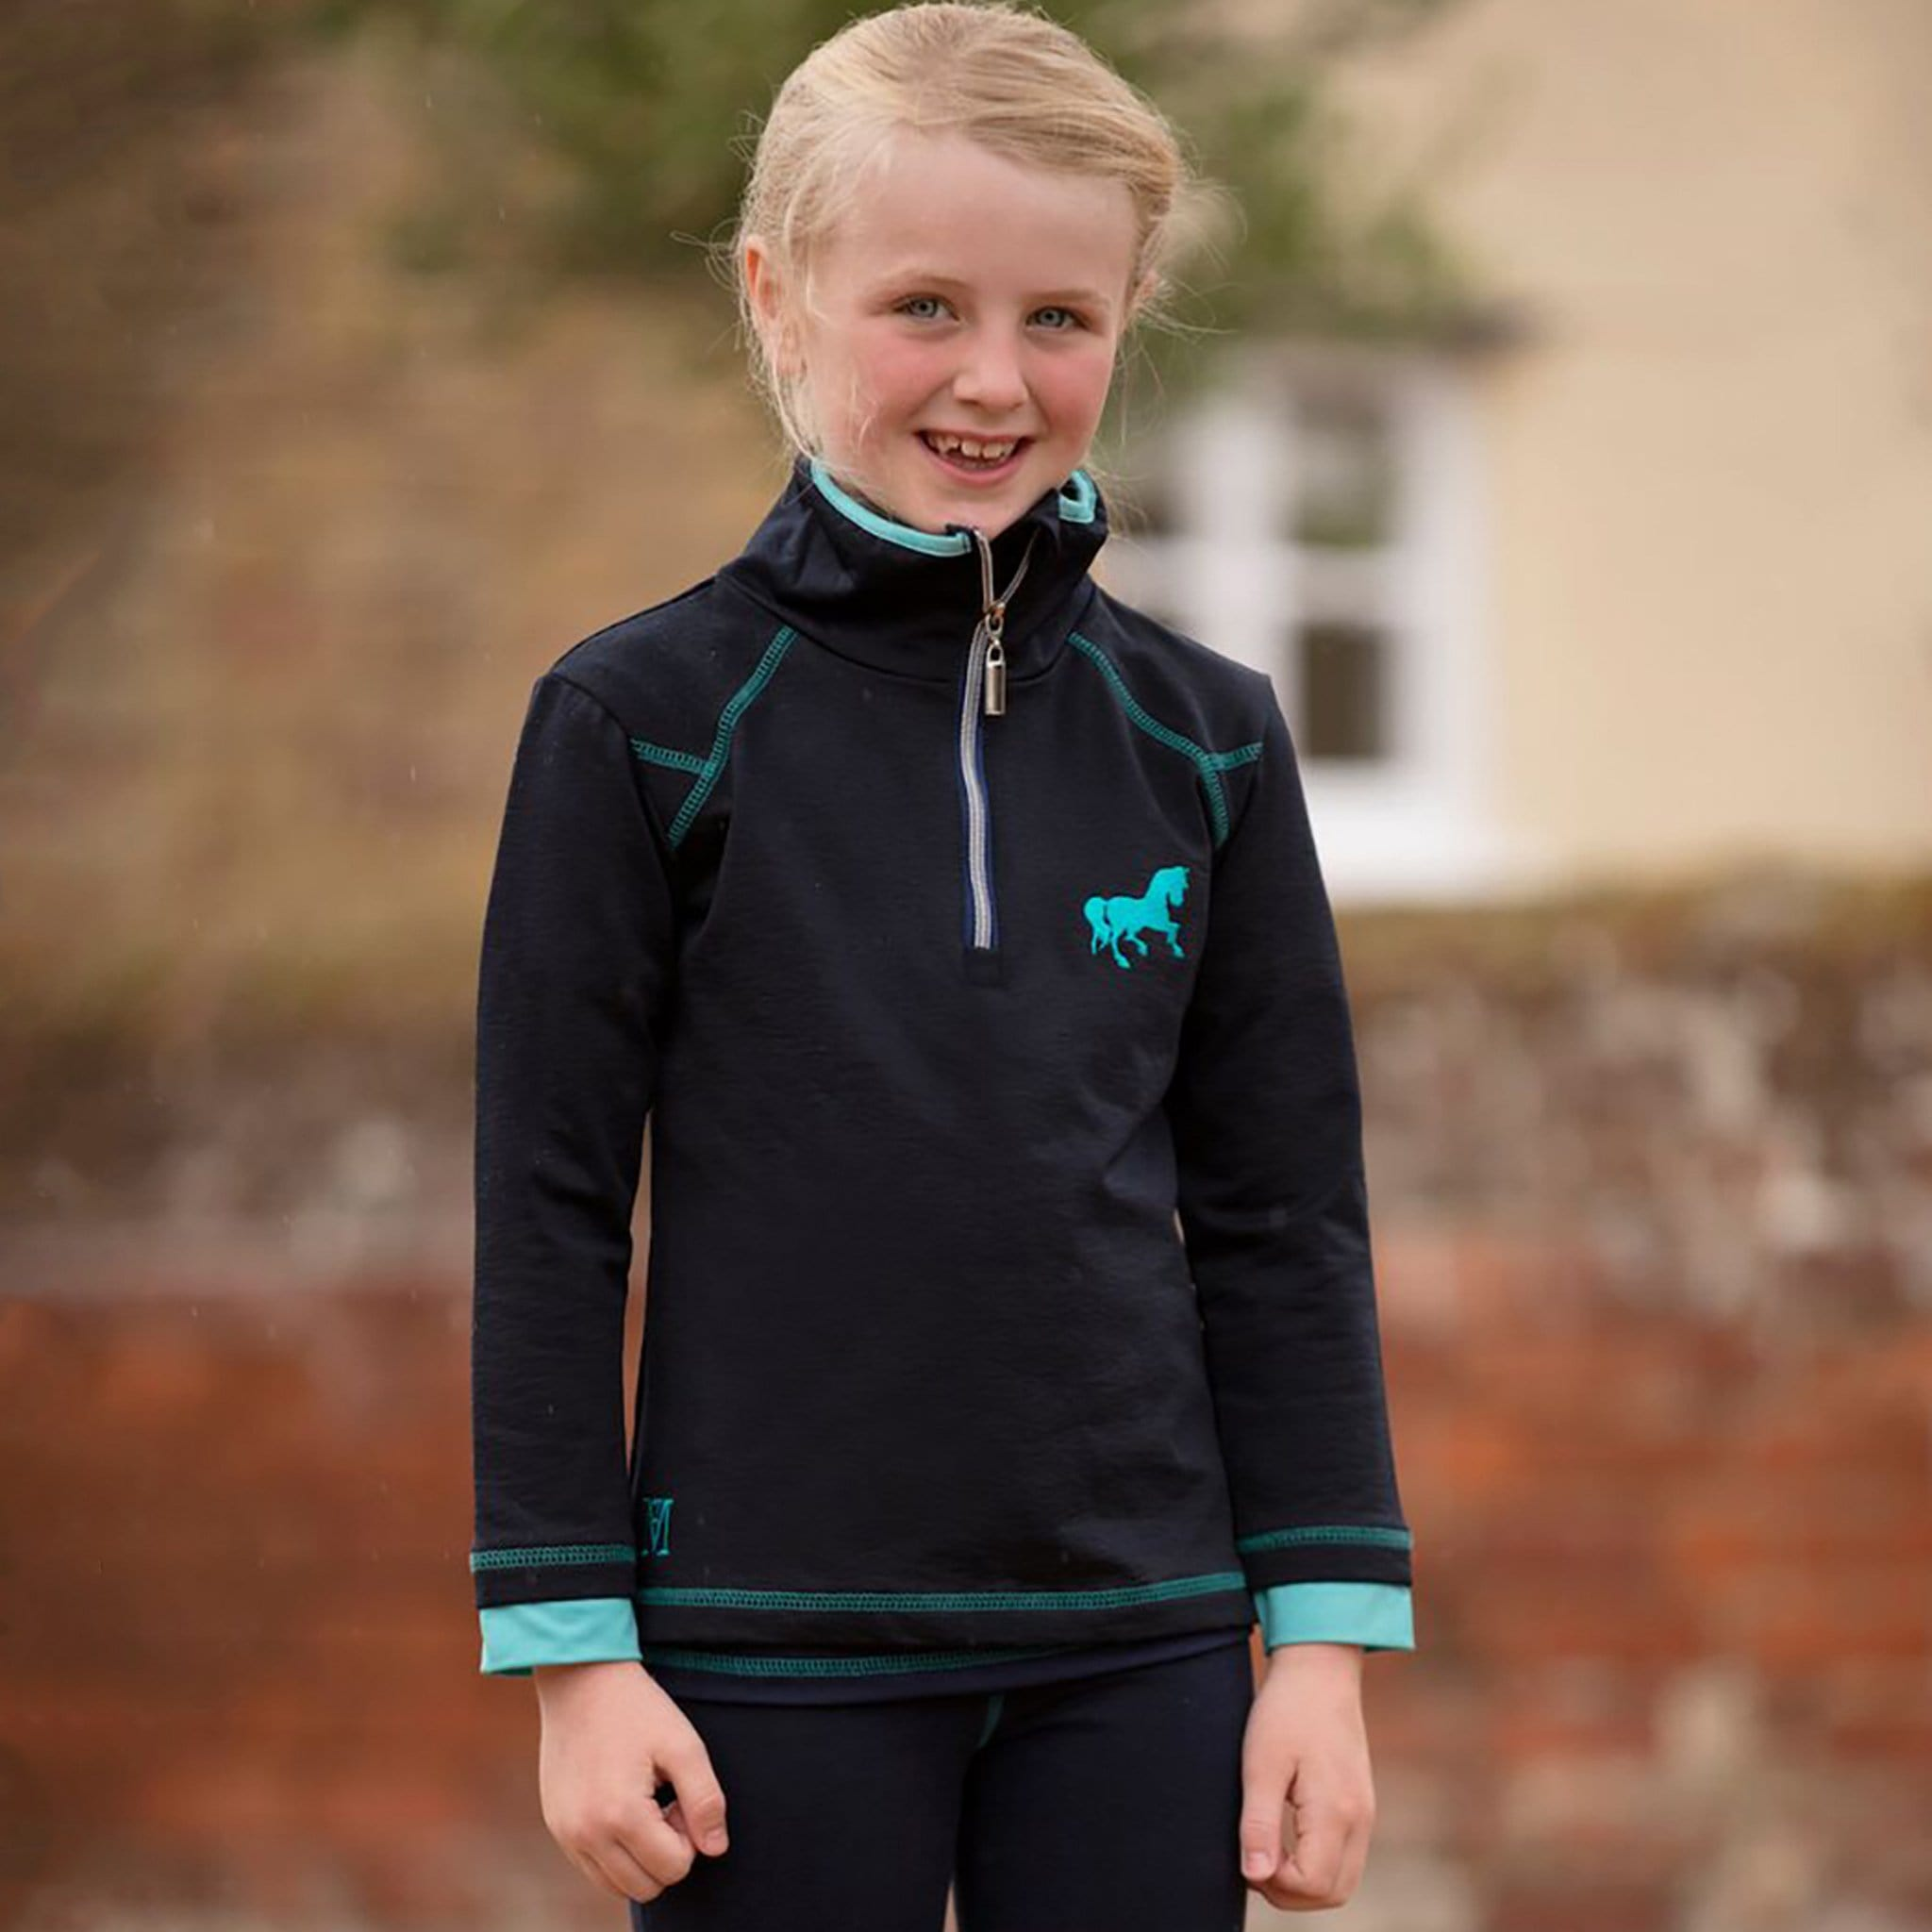 Mark Todd Silicone Horse Children's Training Top TOD603474 Navy and Aqua On Child Front